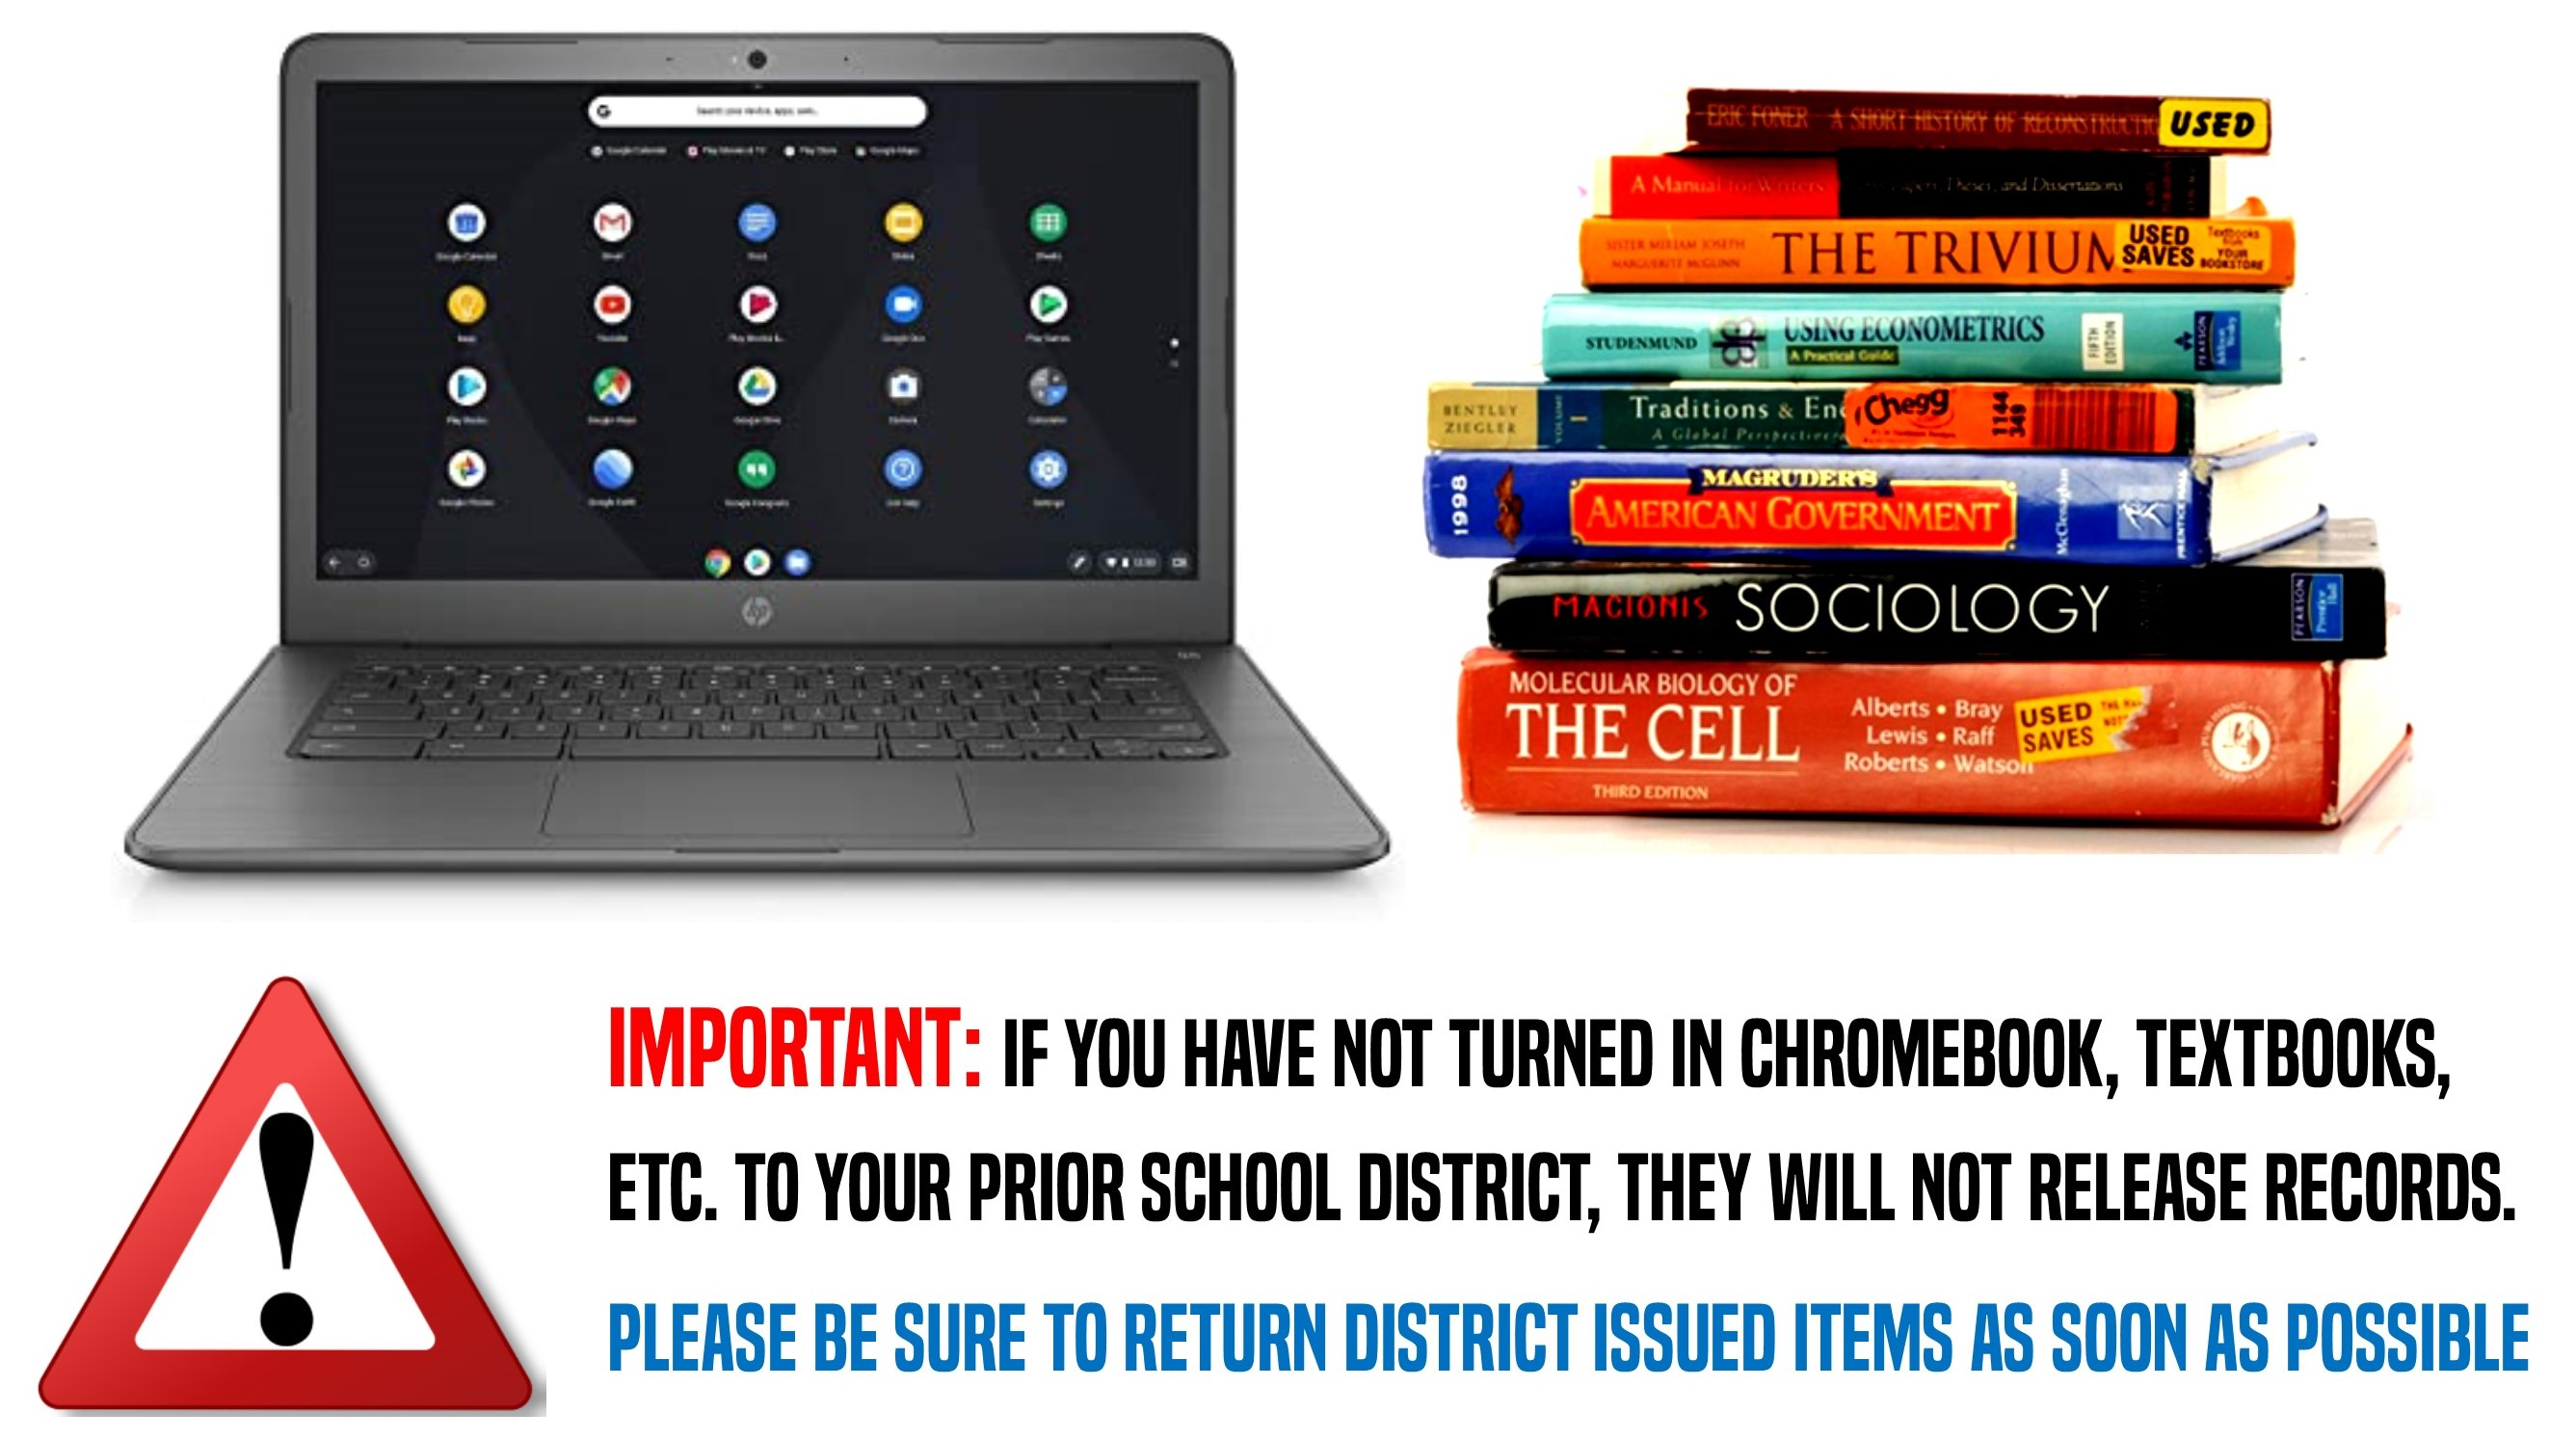 Return Items to Prior District